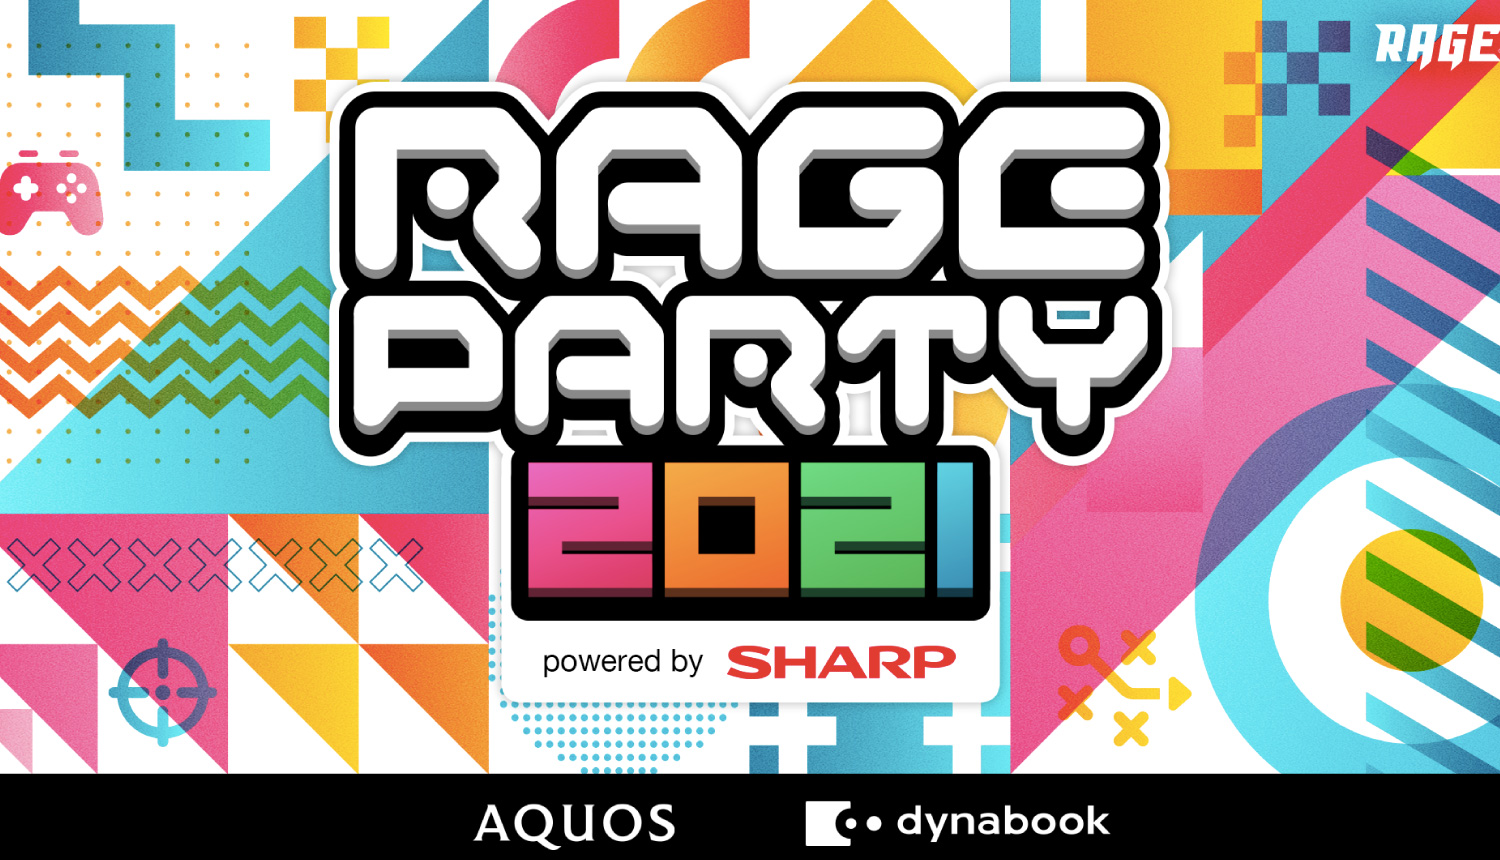 rage-party-2021-e%e3%82%b9%e3%83%9d%e3%83%bc%e3%83%84